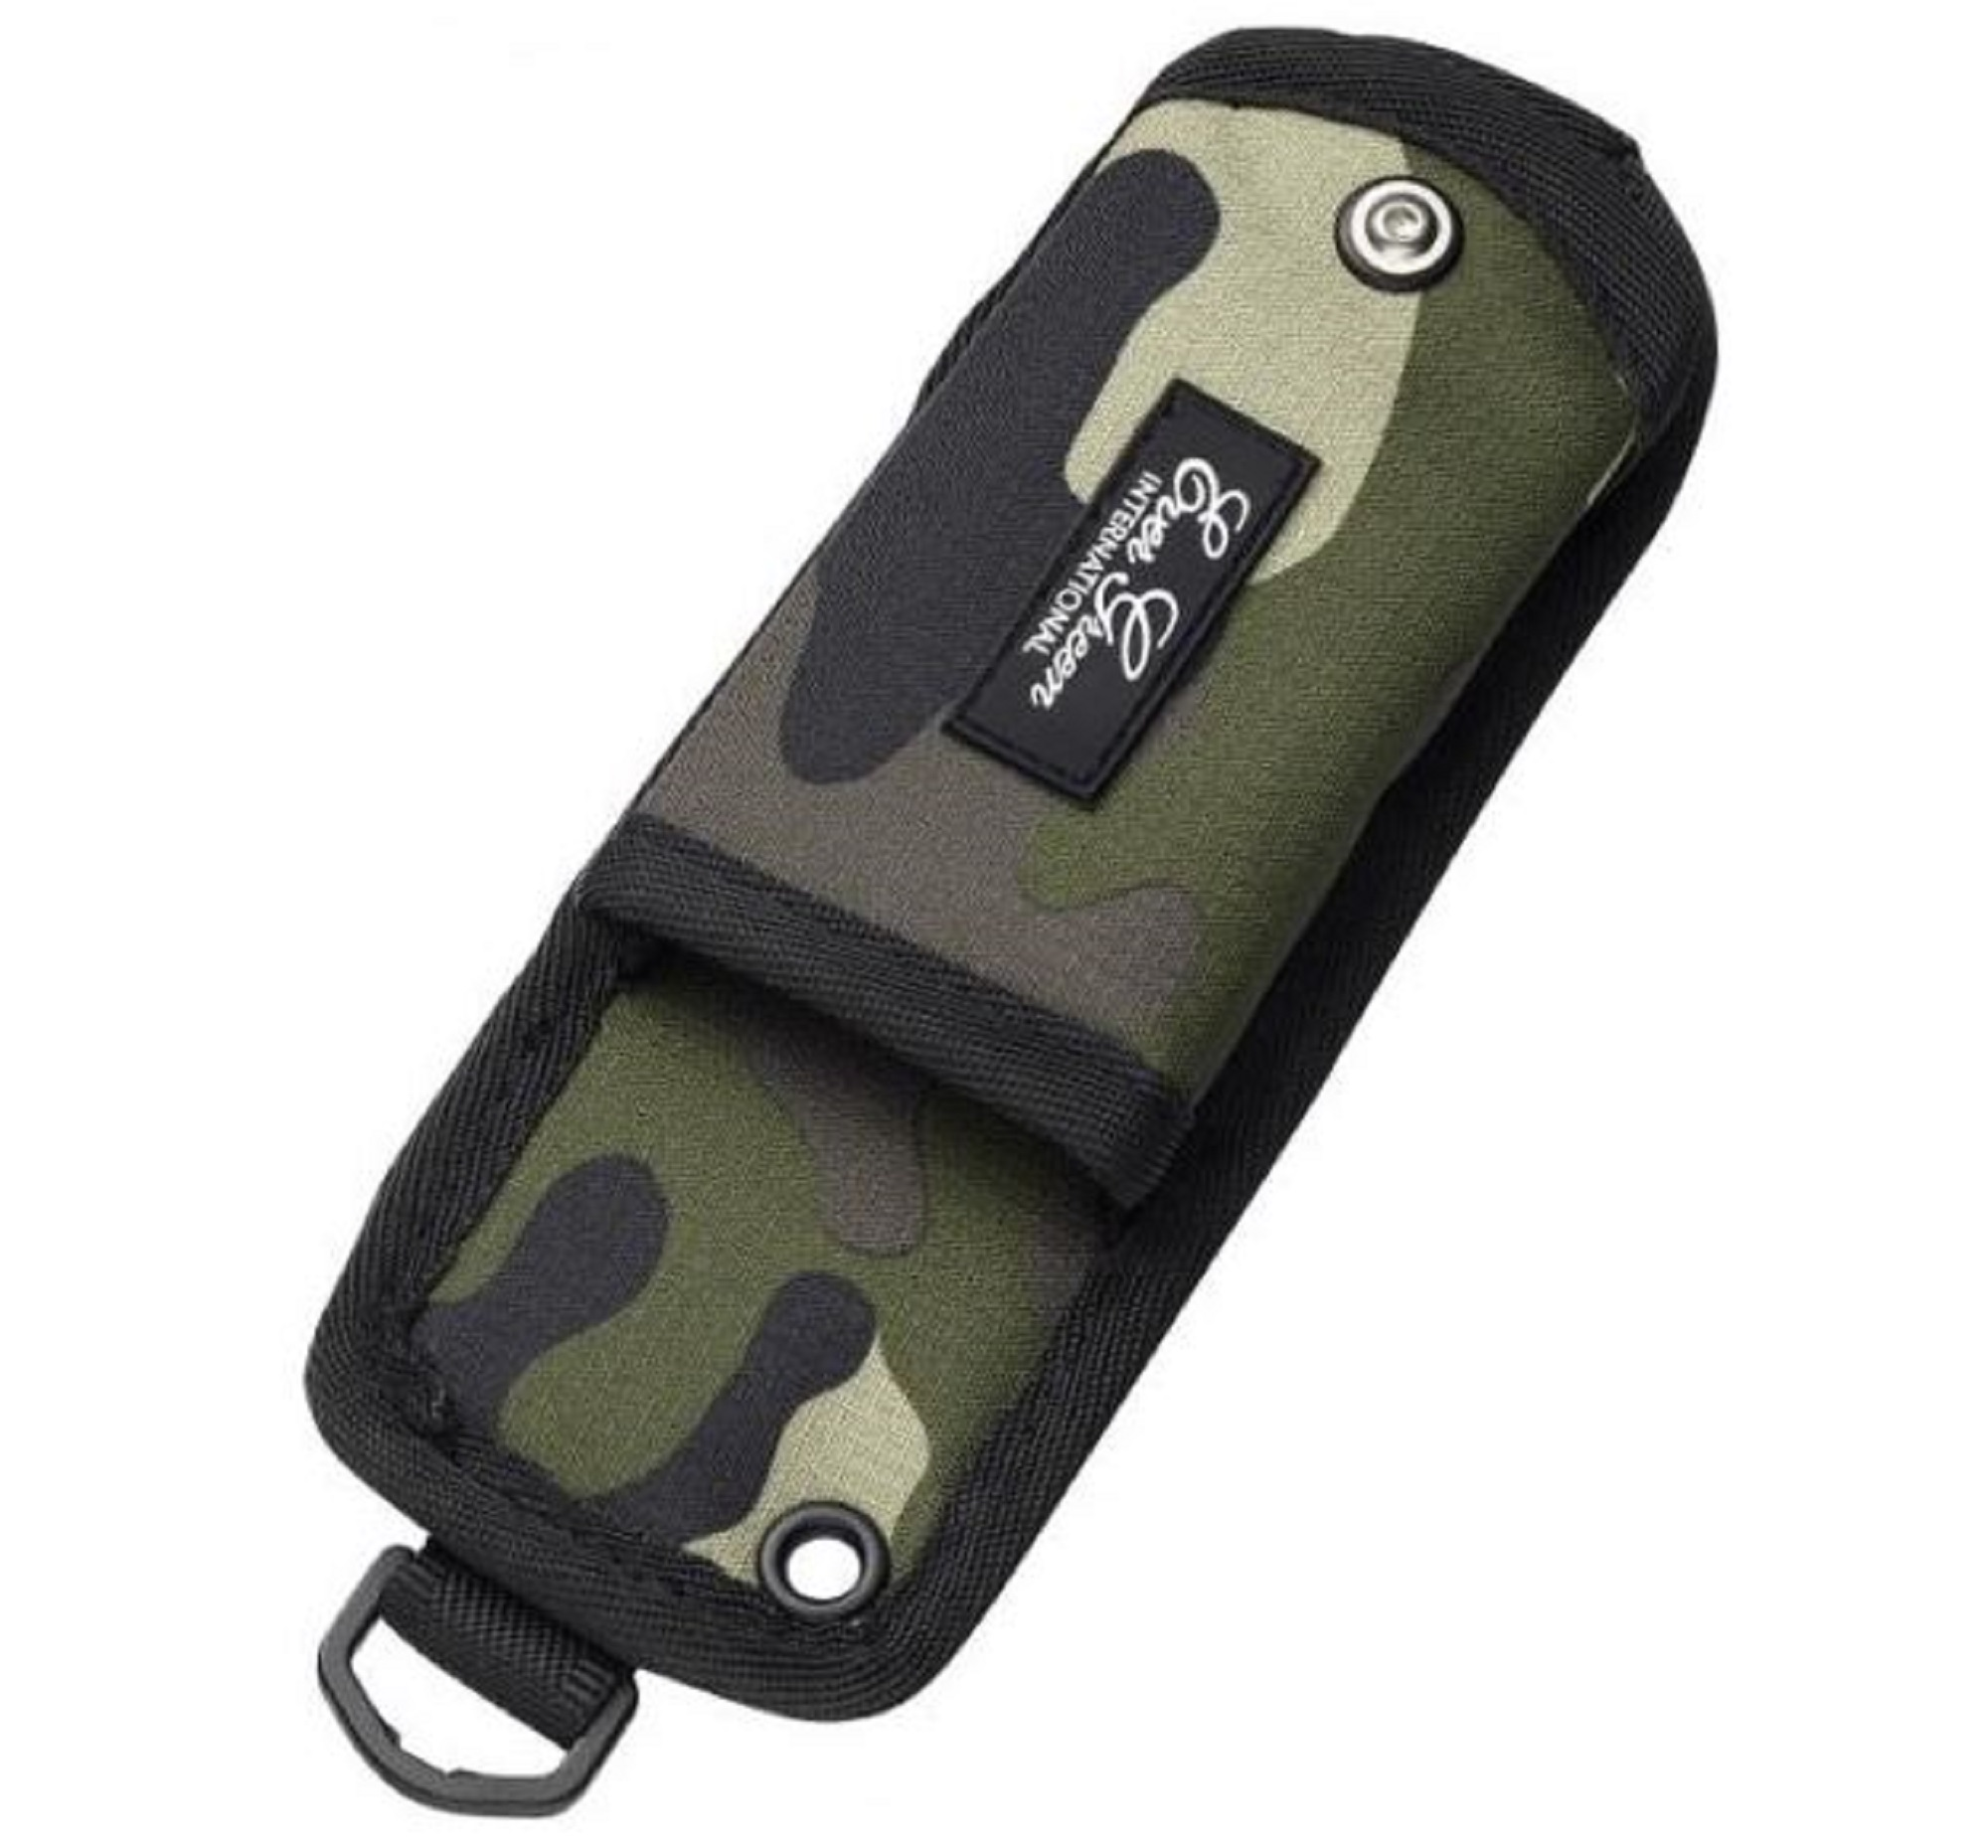 Evergreen EG Grip Holder Pouch Camou (6245)